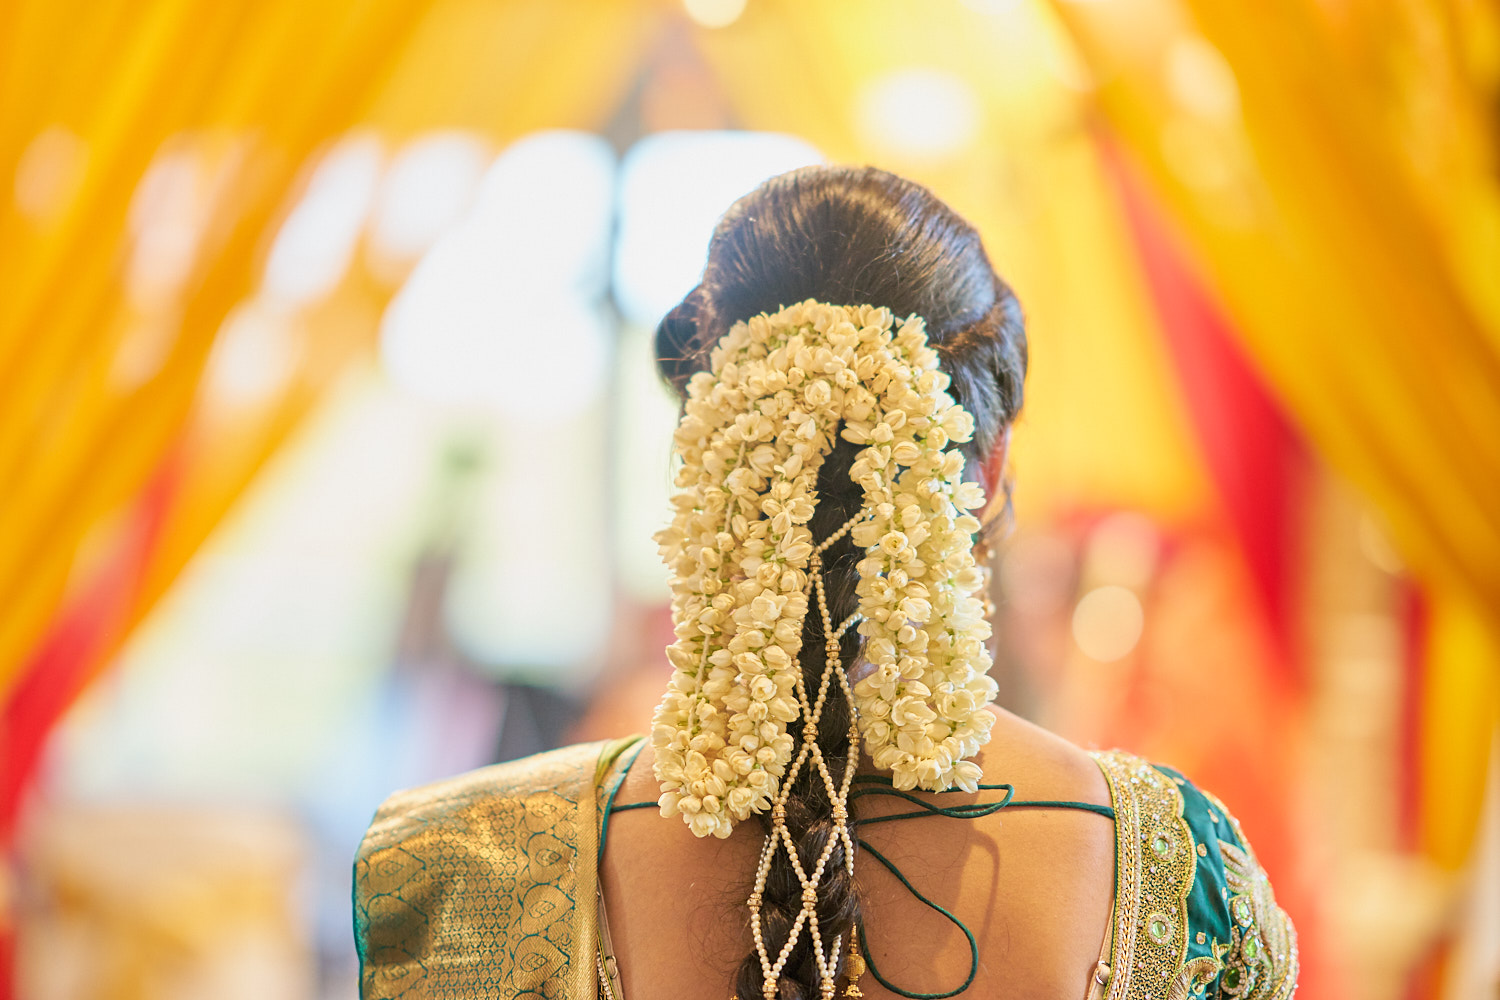 south-indian-wedding-ceremony-photography-by-afewgoodclicks-net-in-saratoga 230.jpg